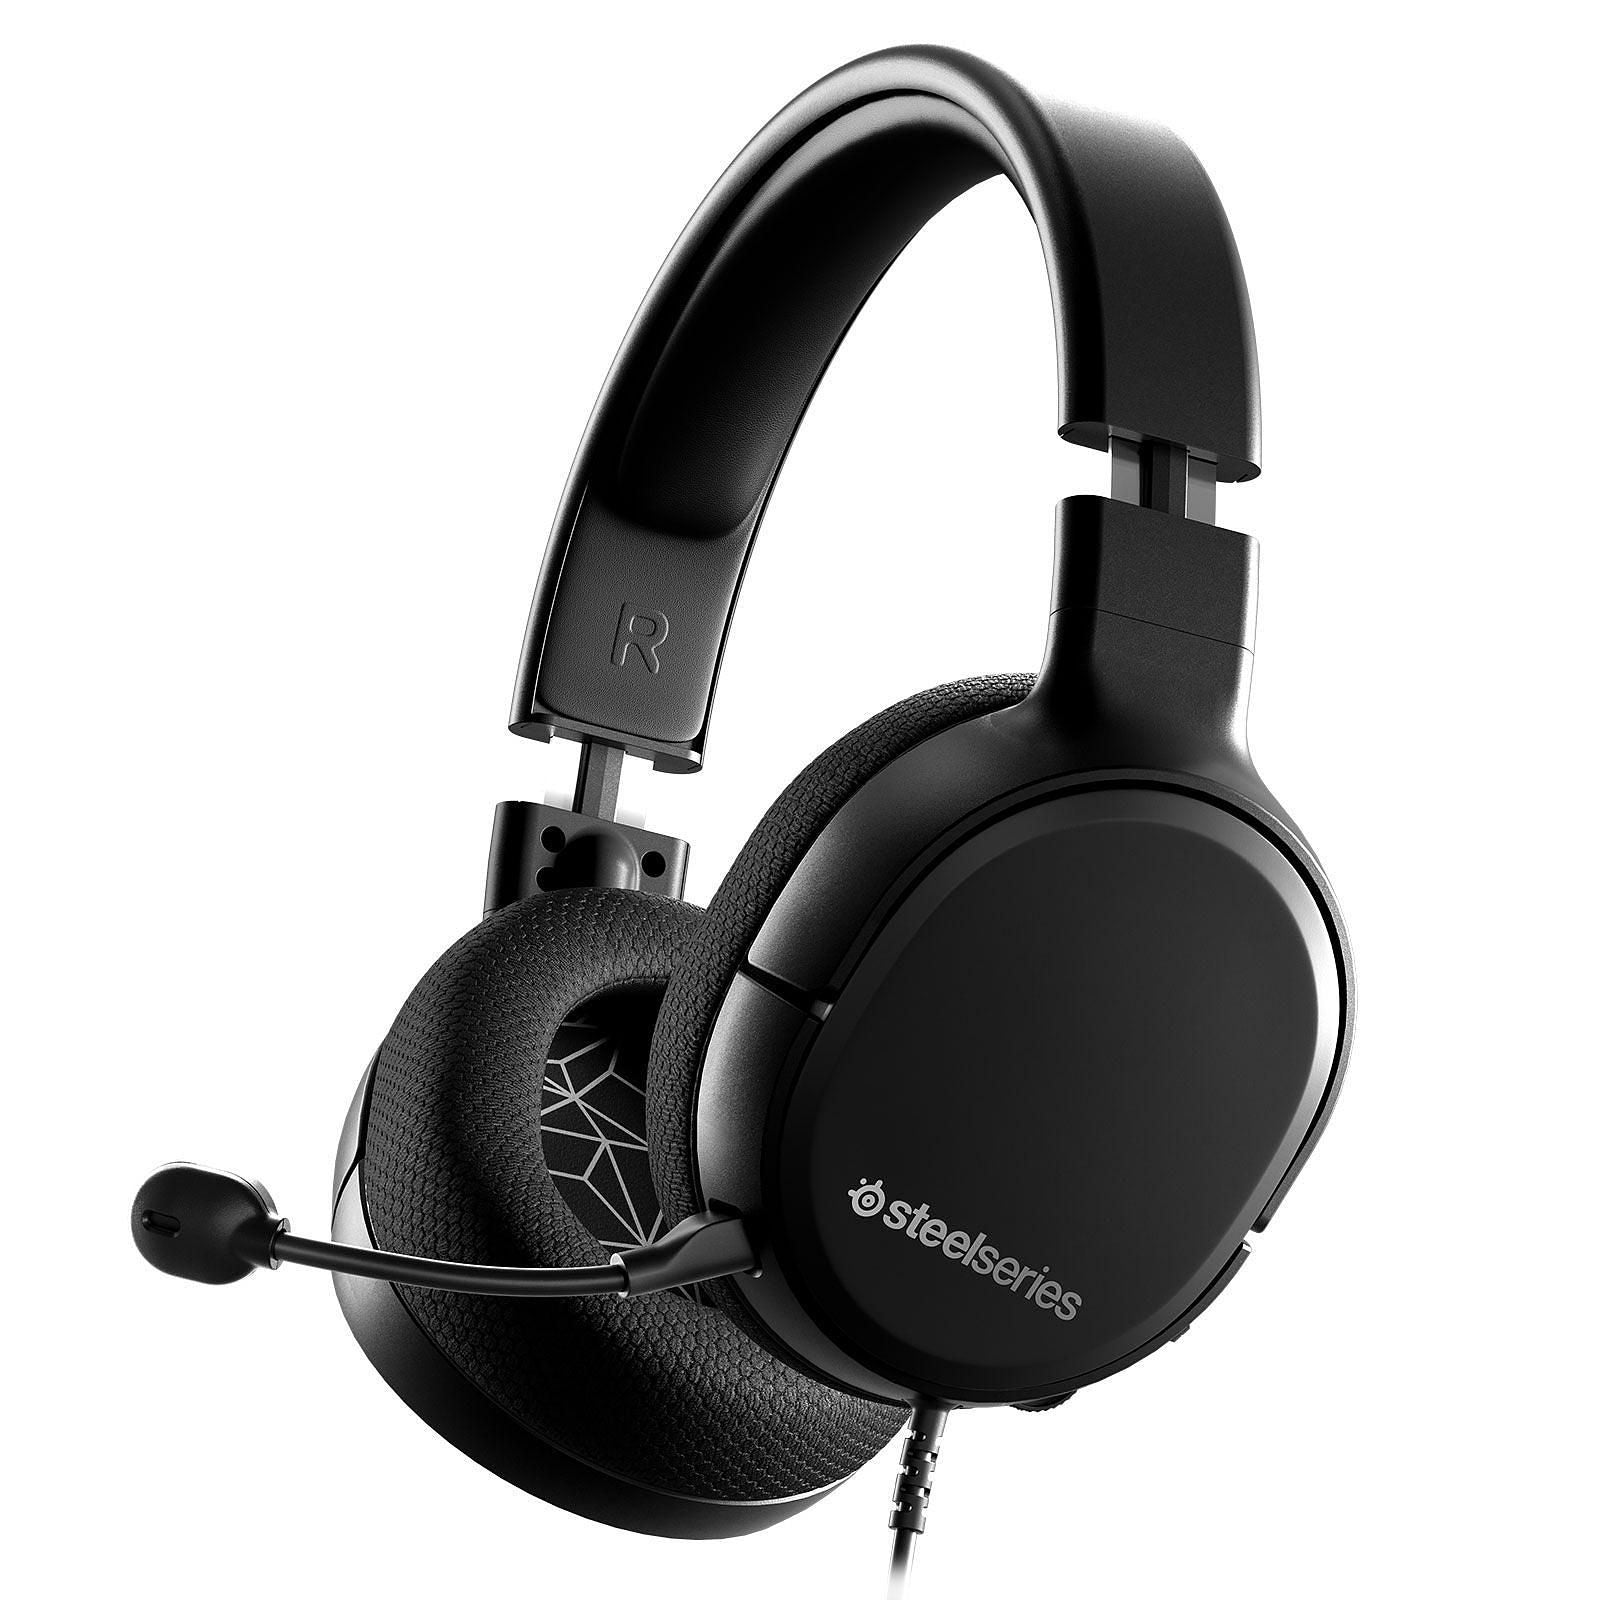 SteelSeries Arctis 1 (noir) - Casque gaming - Circum-aural fermé - Microphone détachable avec suppression du bruit - Jack - Compatible PC/Mac/Mobiles et consoles